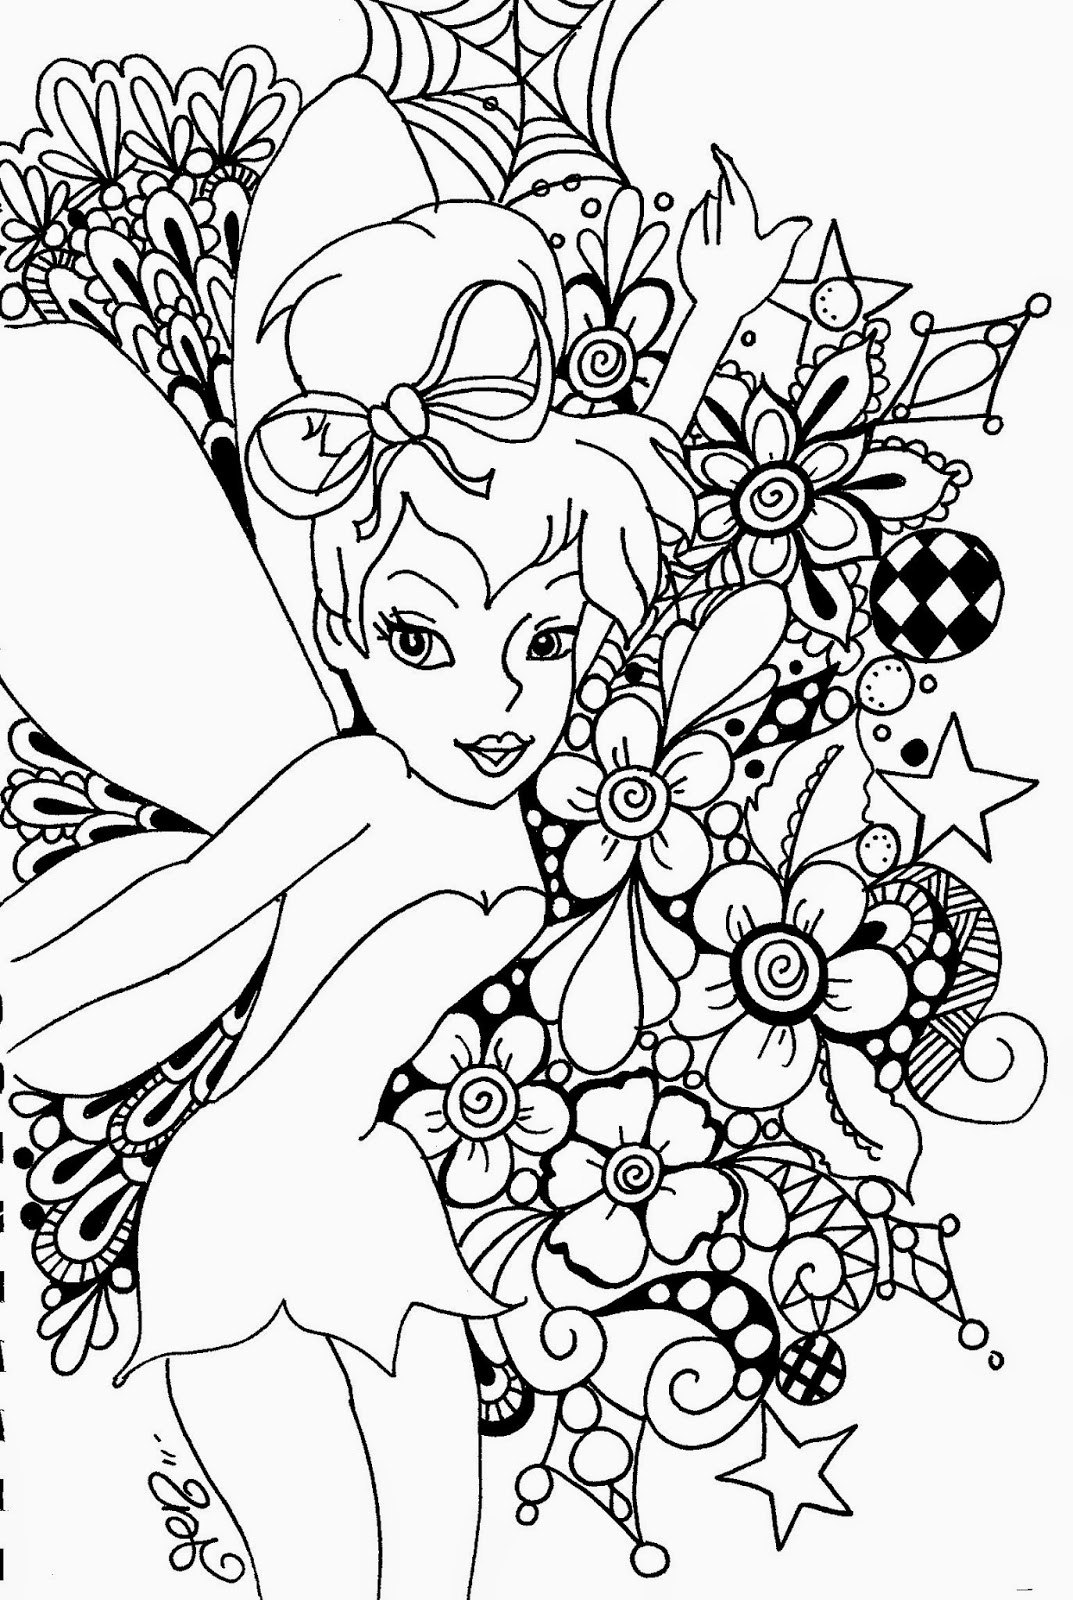 tinkerbell for coloring coloring pages tinkerbell coloring pages and clip art tinkerbell coloring for 1 1